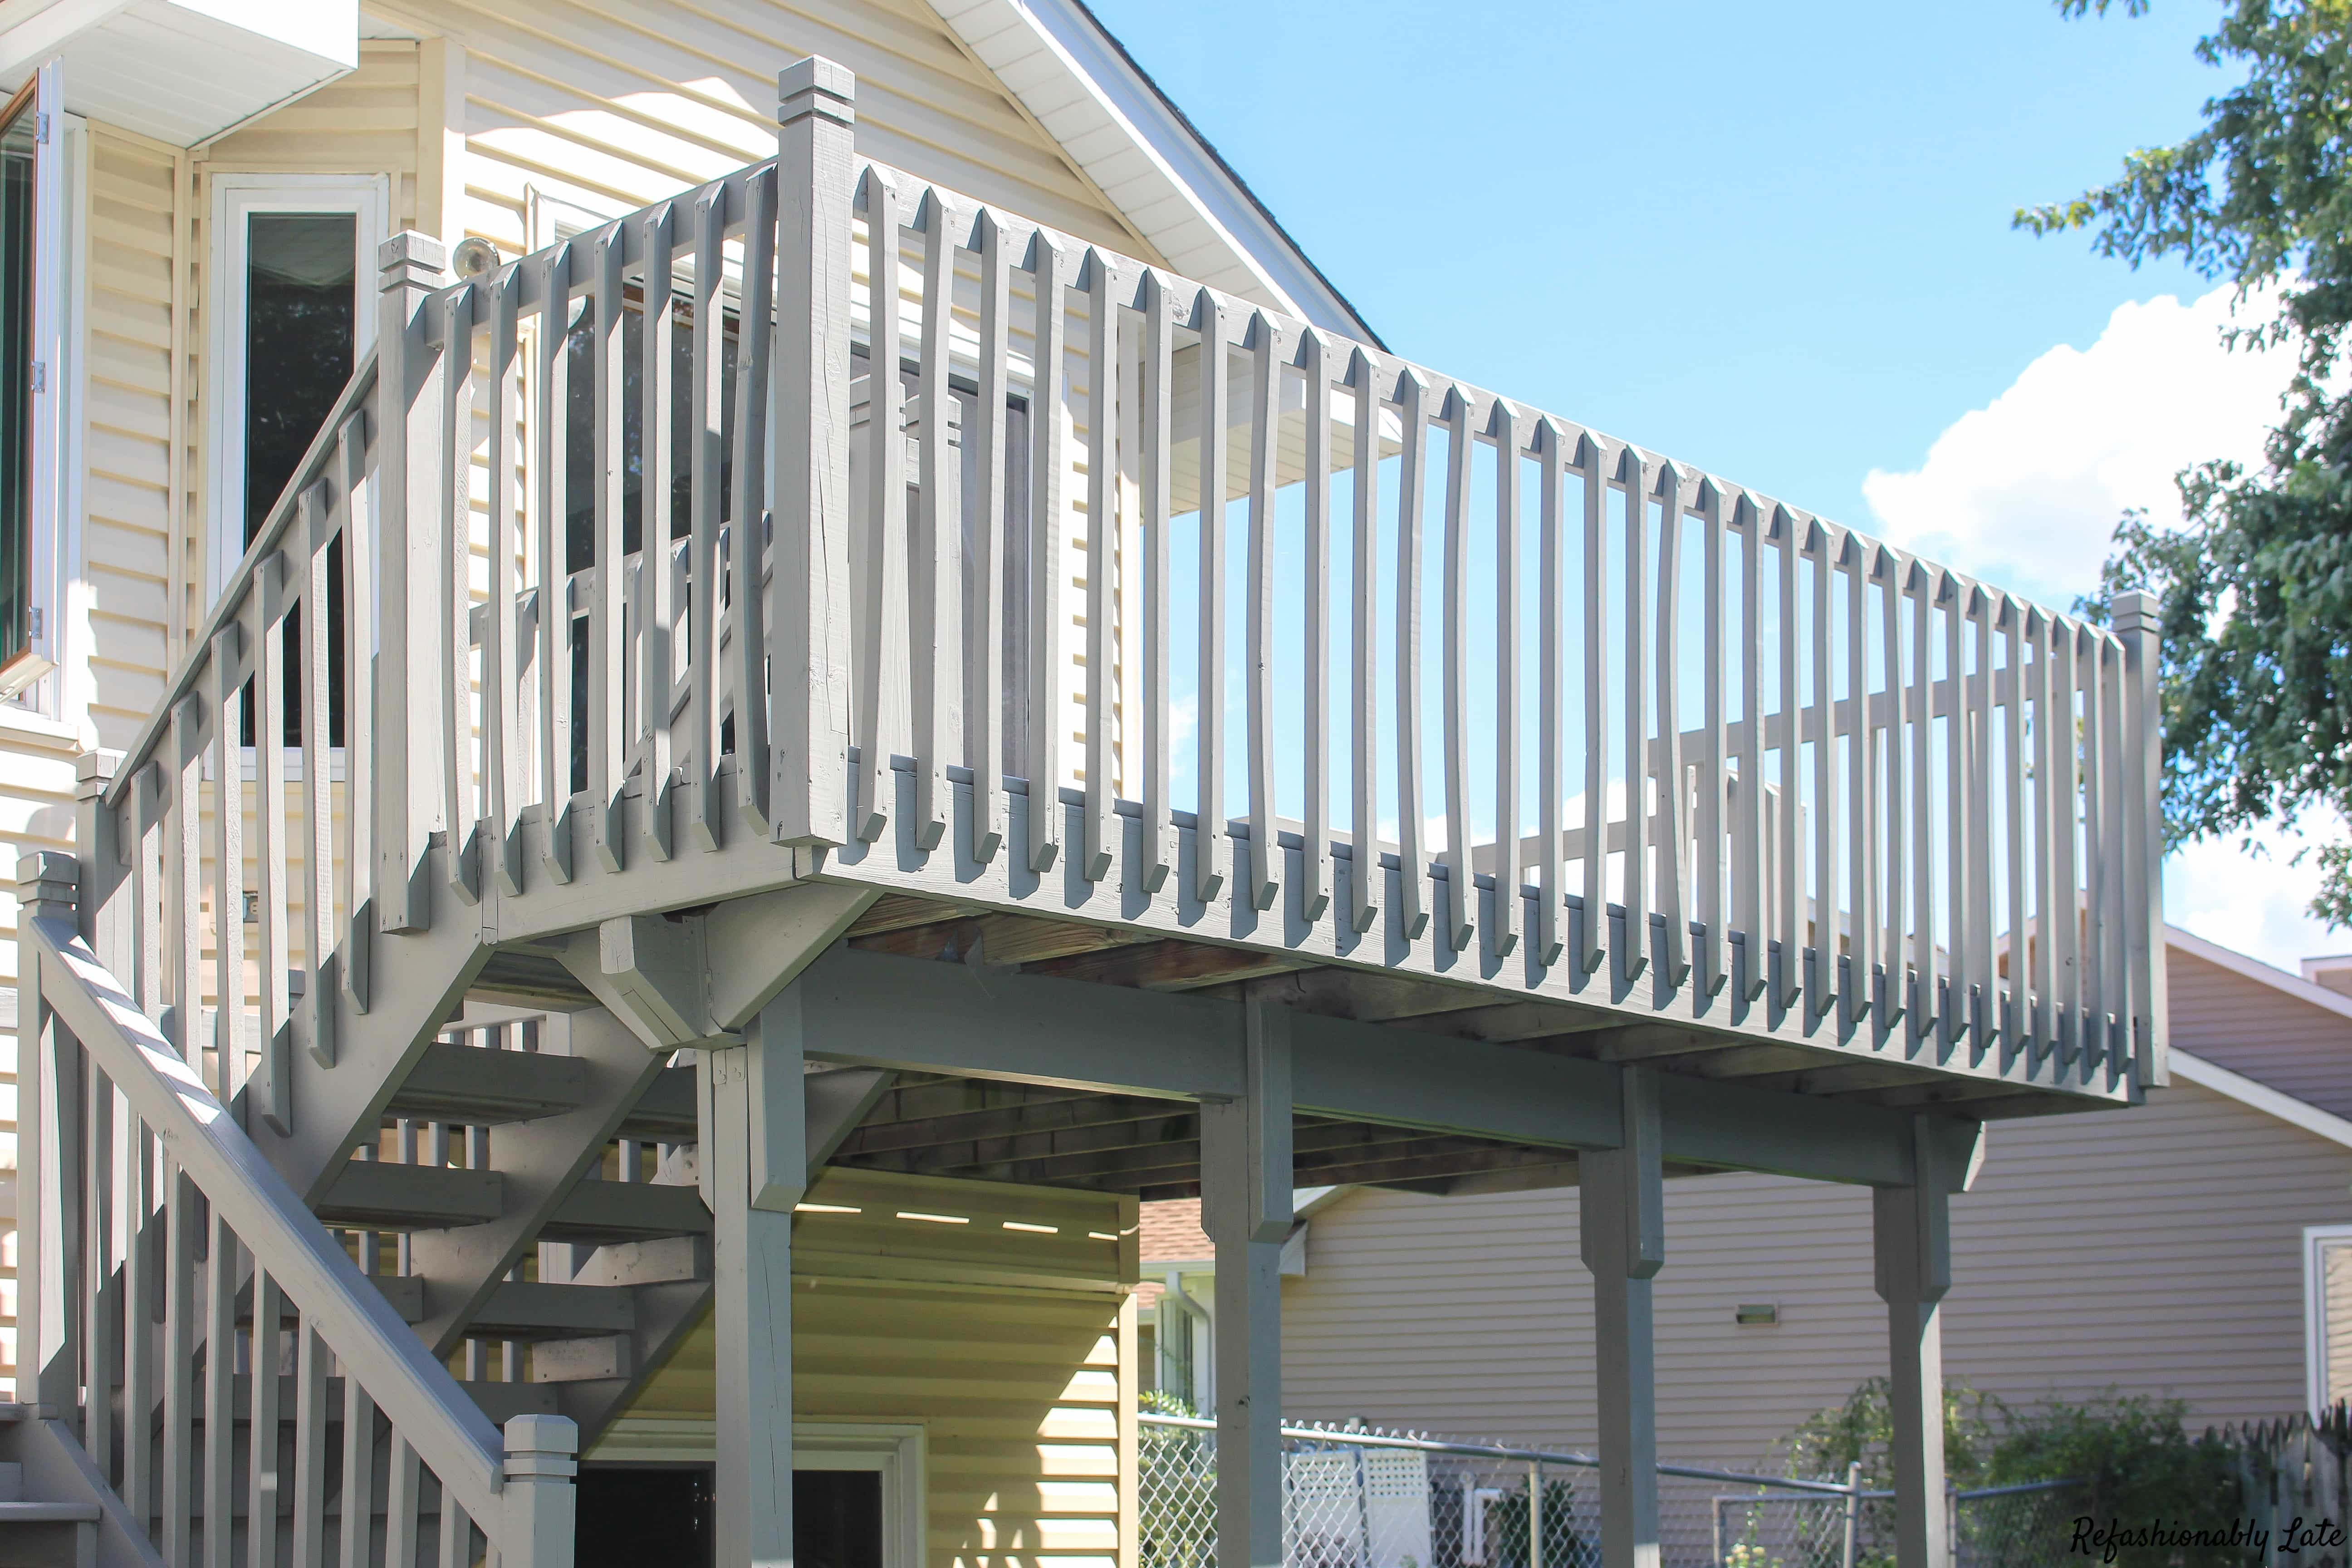 A Fresh Coat of Paint: How to Paint Your Deck - www.refashionablylate.com